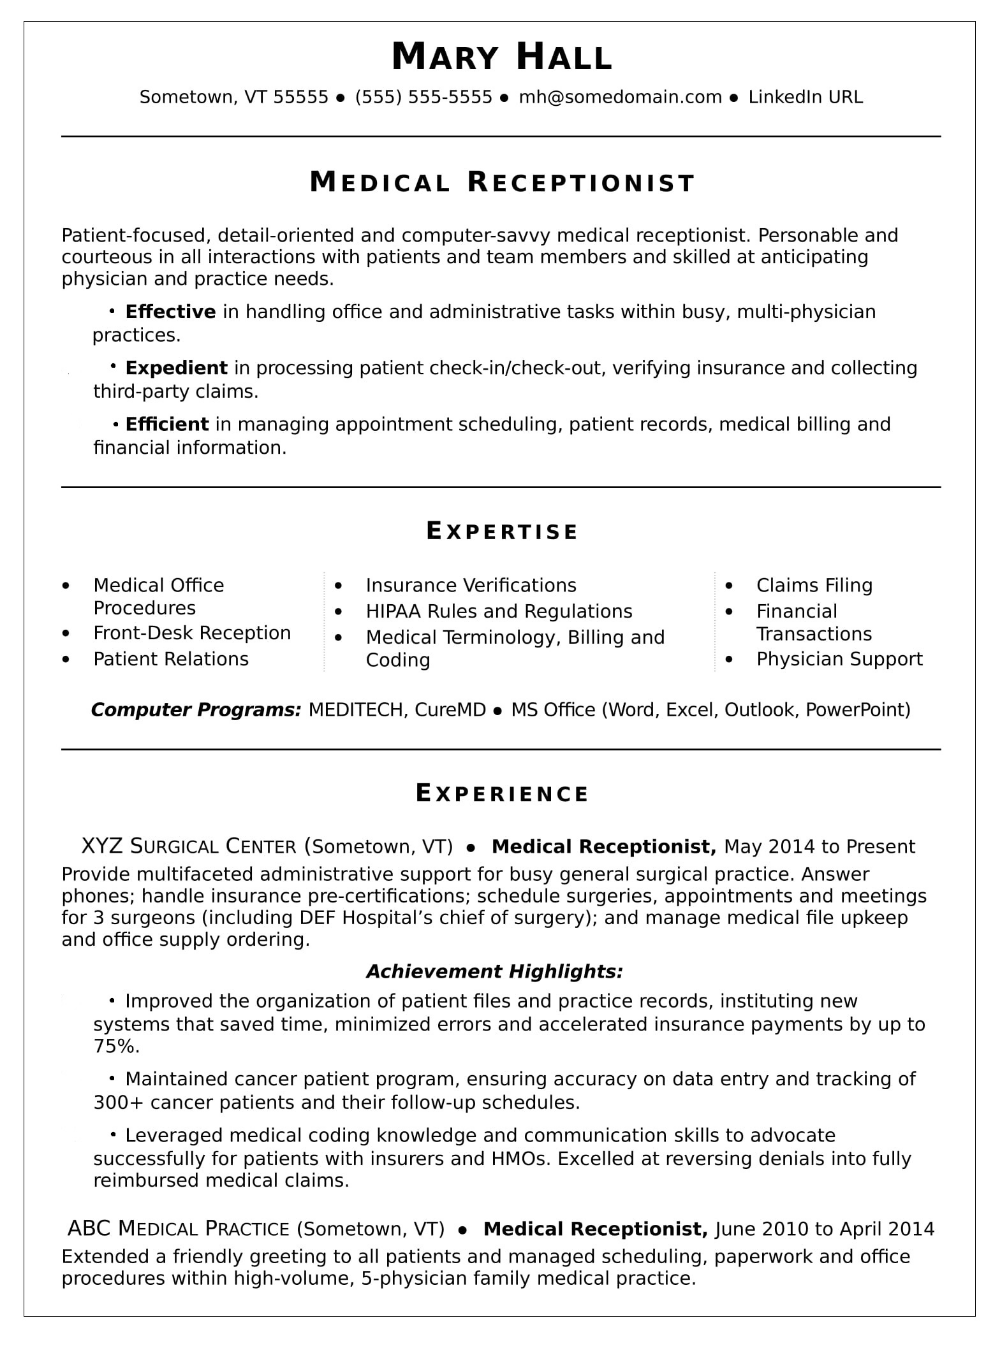 Resume For Receptionist Tips Examples Resumewritinglab